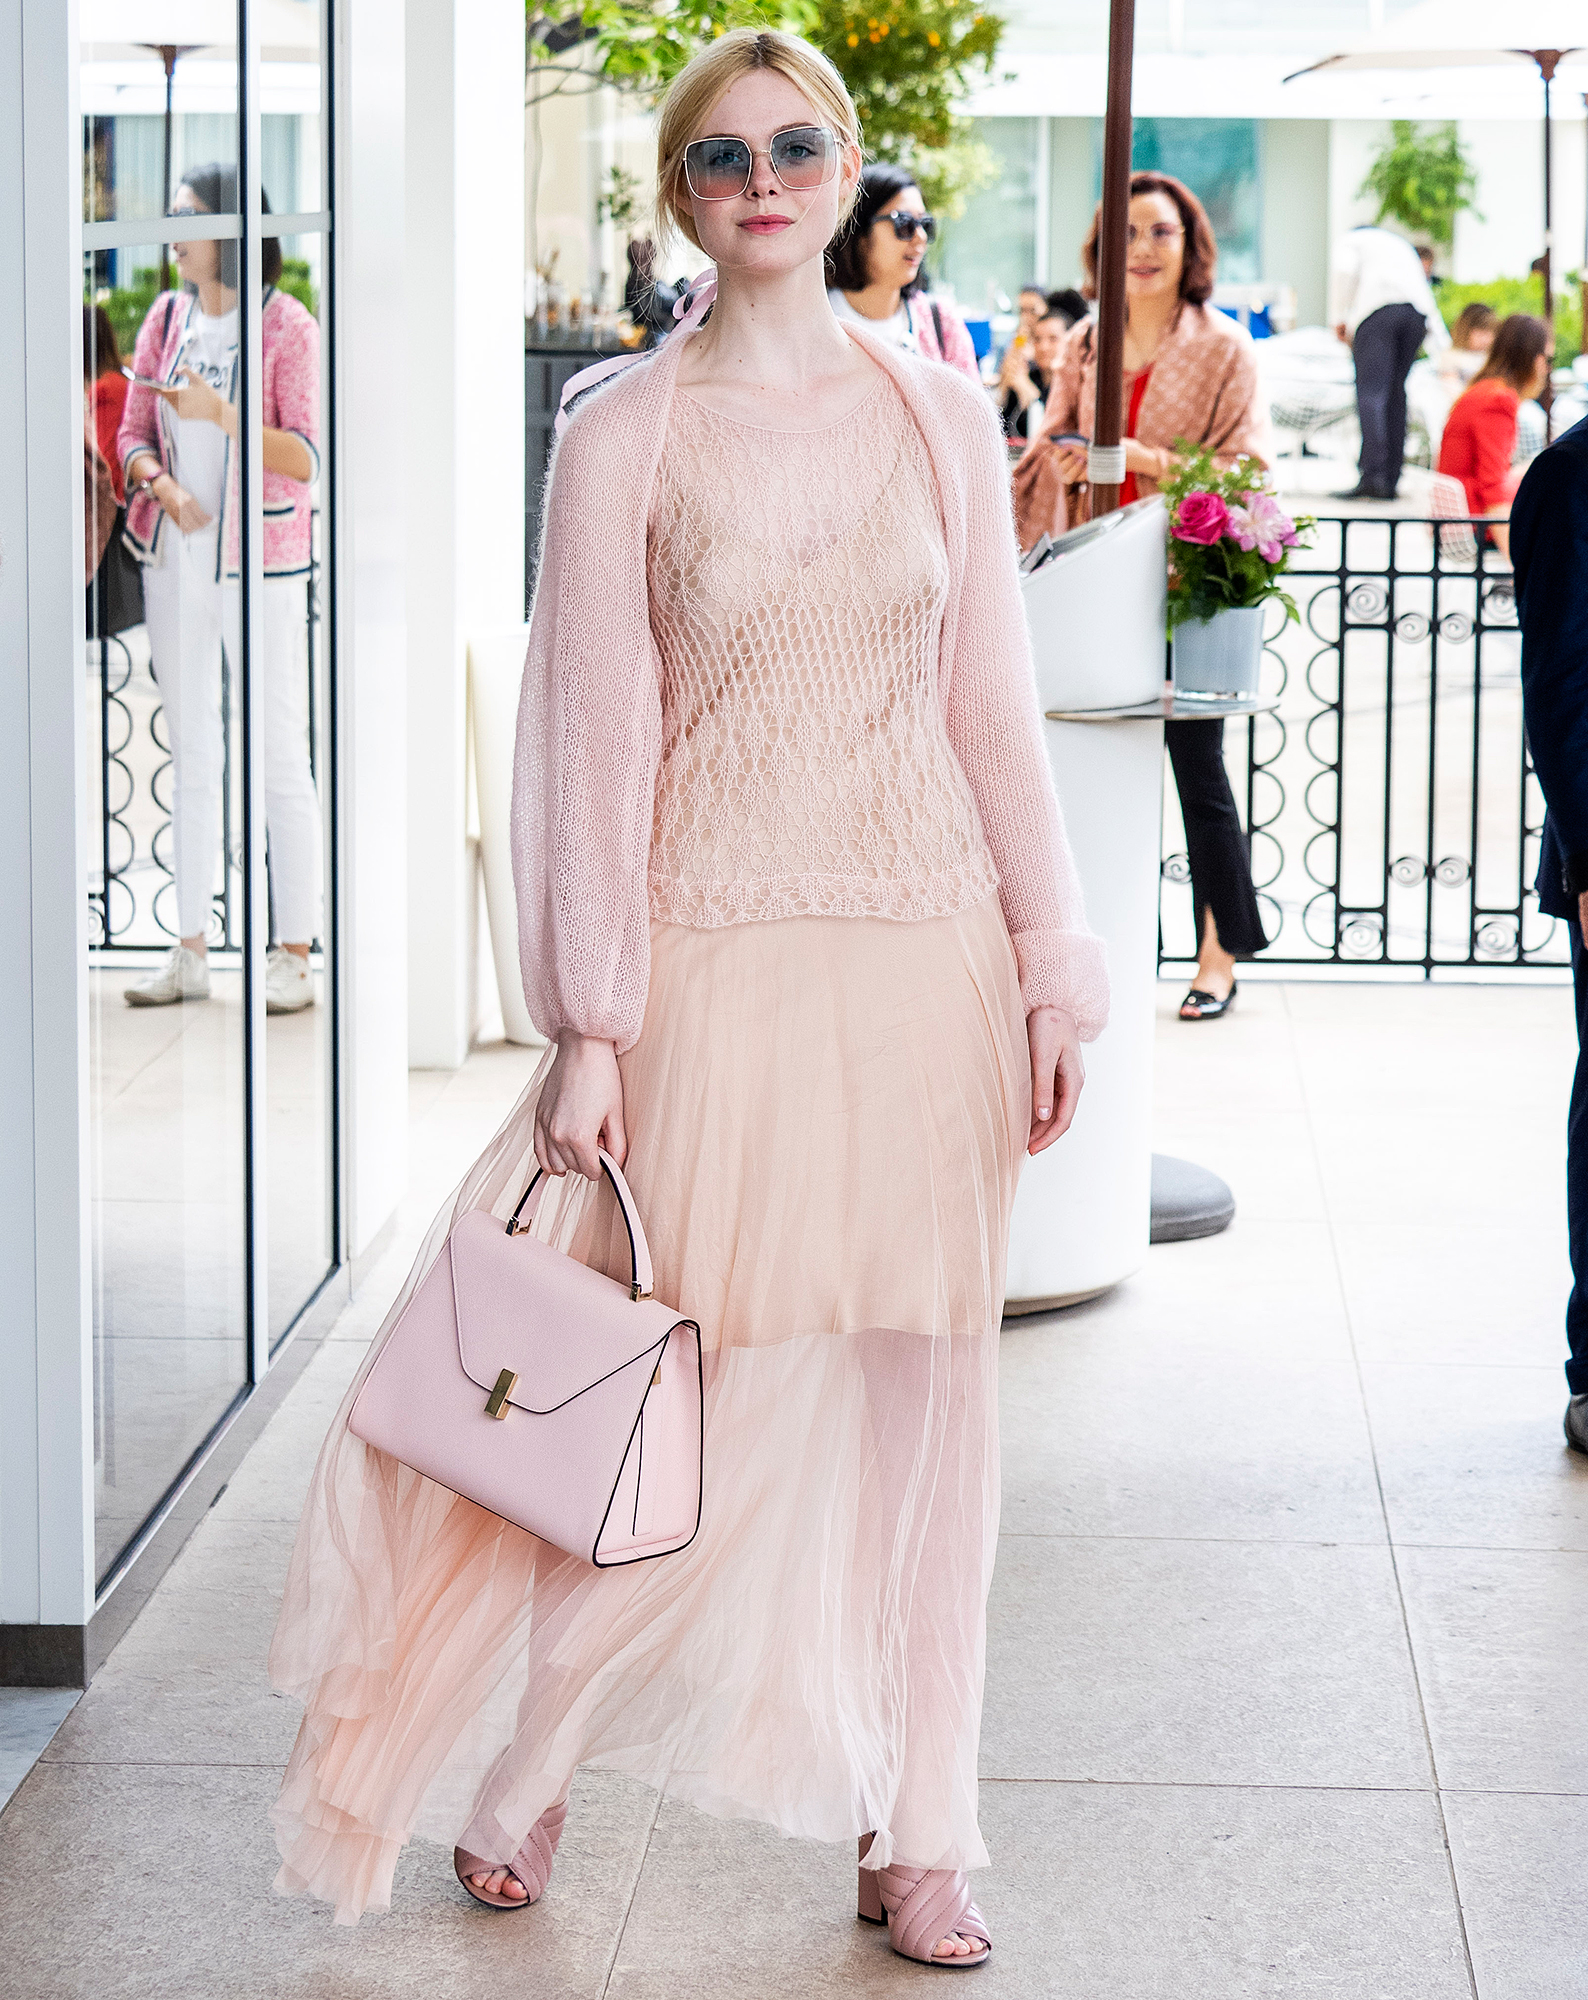 Elle-Fanning - Monochrome dressing at its finest, the jurist was pretty in blush pink separates on Thursday, May 23.